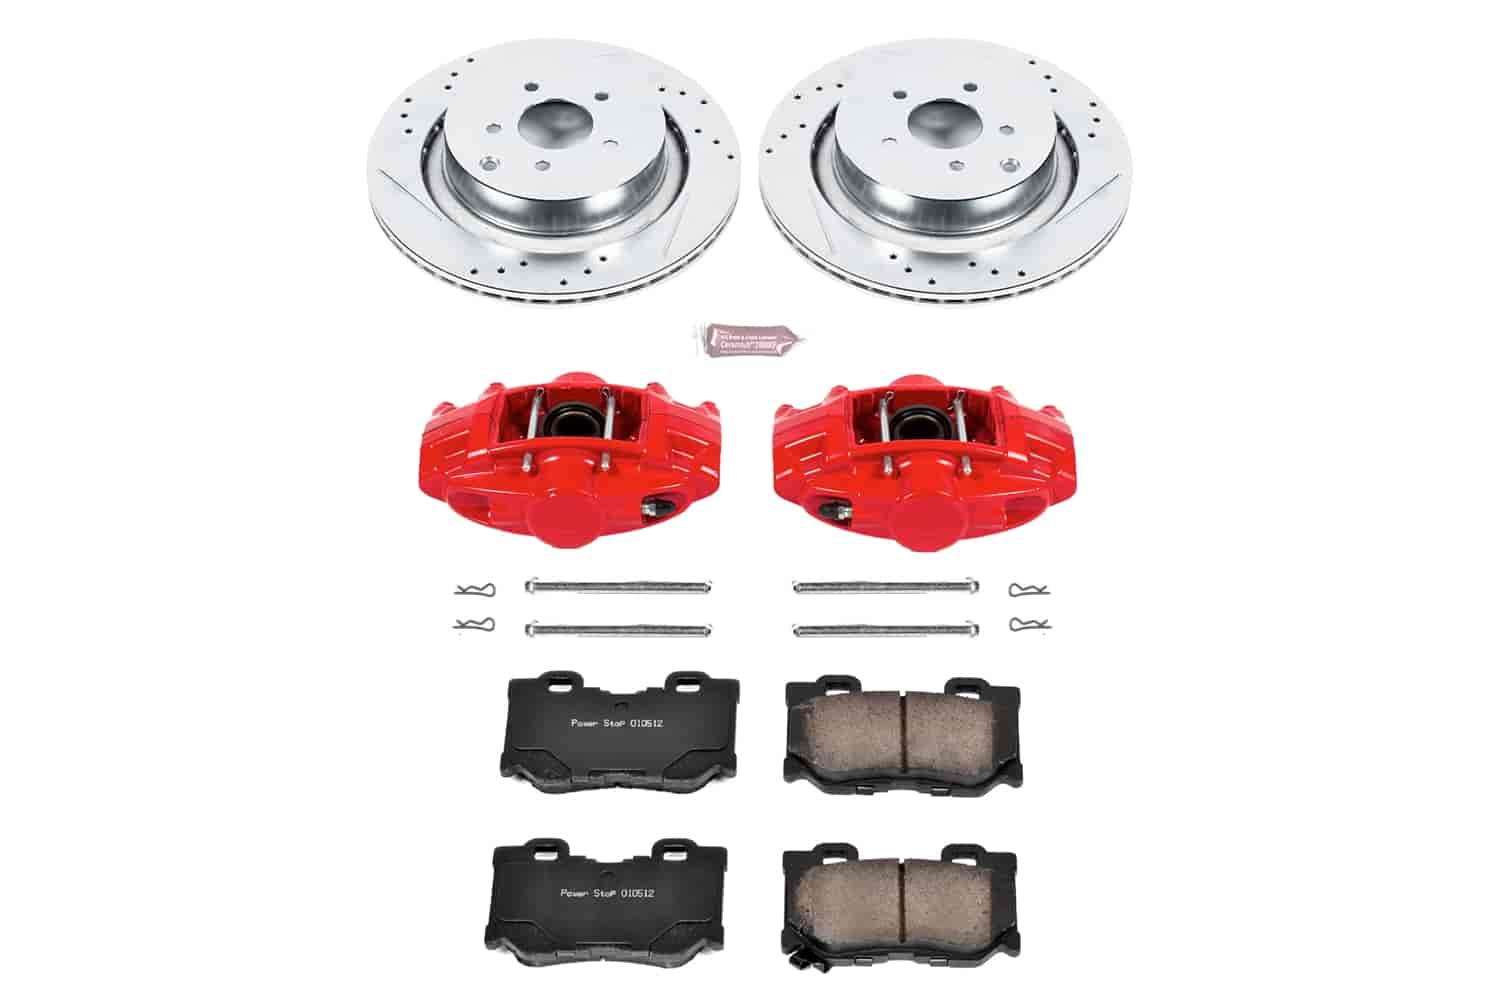 Front Cross-Drilled Slotted Brake Rotors Disc and Ceramic Pads M35h,M37